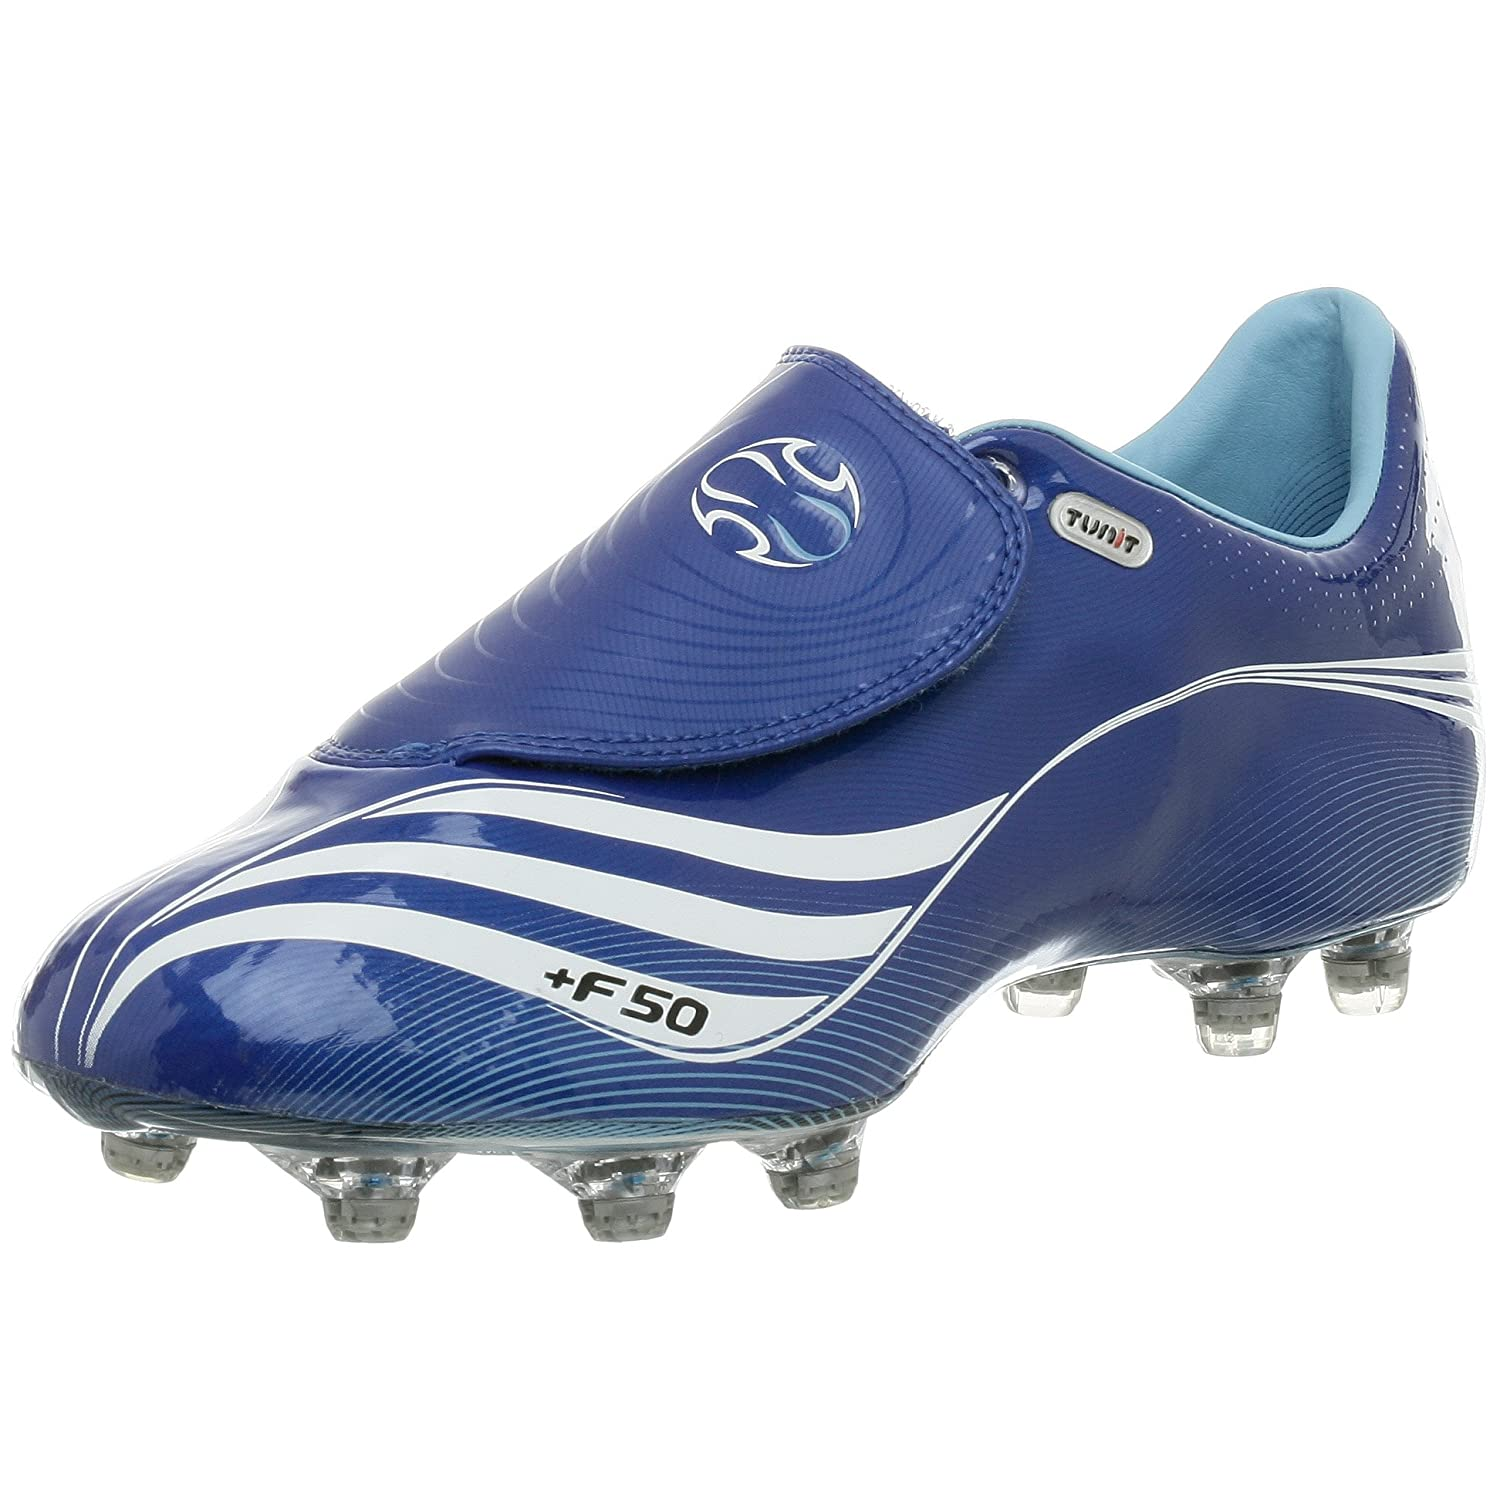 adidas Shoes F50 Tunit Cleats With Studs         Poshmark   Poshmark          adidas Men's +F50.7 Tunit Soccer Cleat, Blue